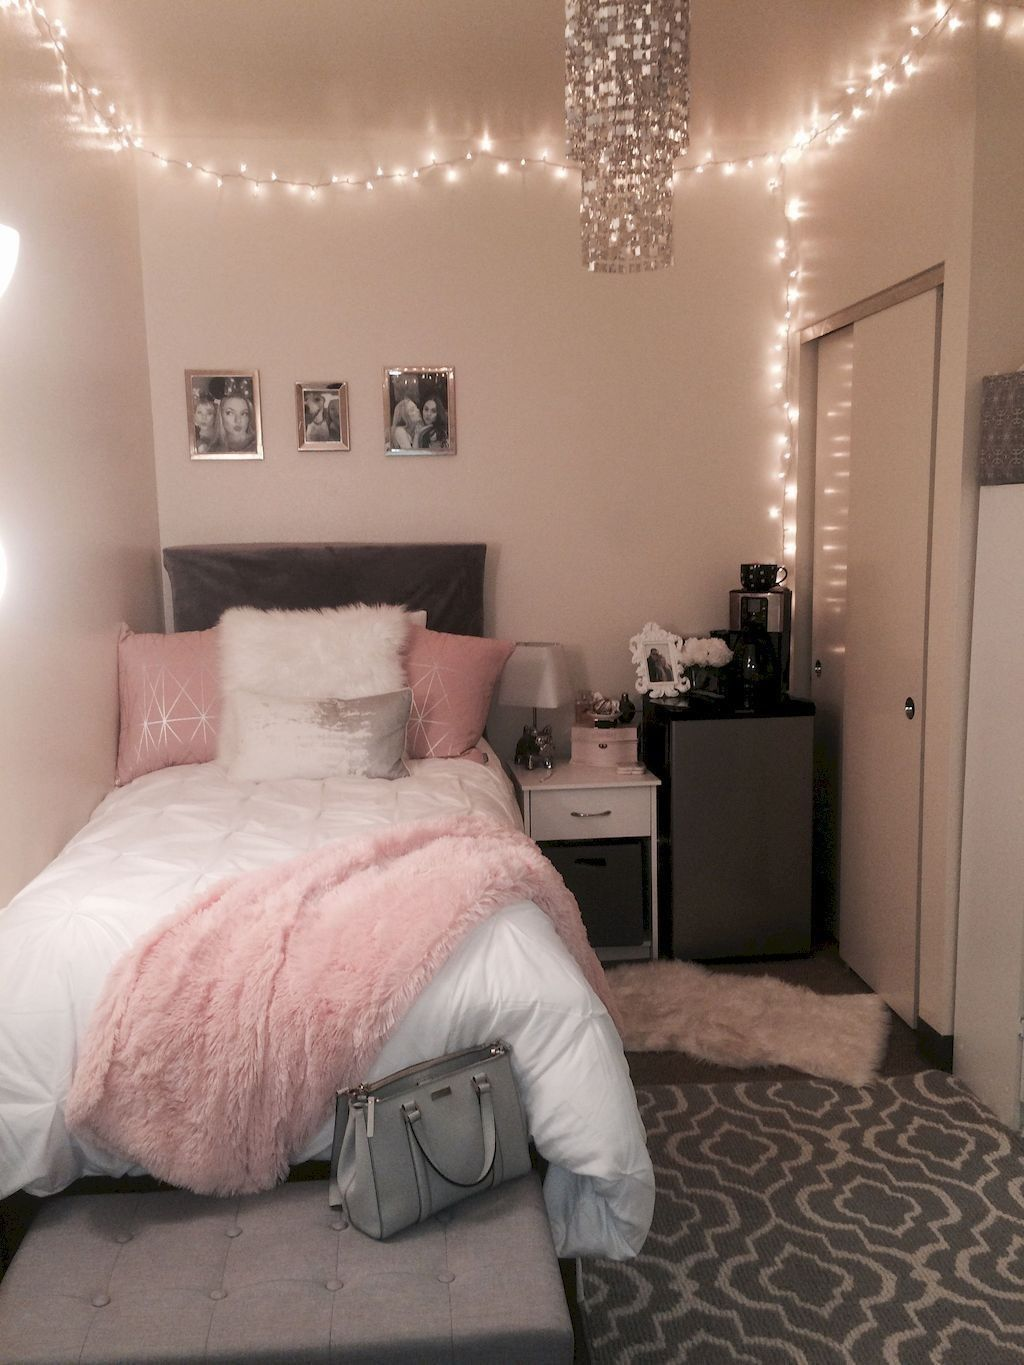 11 Lovely Bedroom Ideas for Small Rooms for Teens - FashionToWear